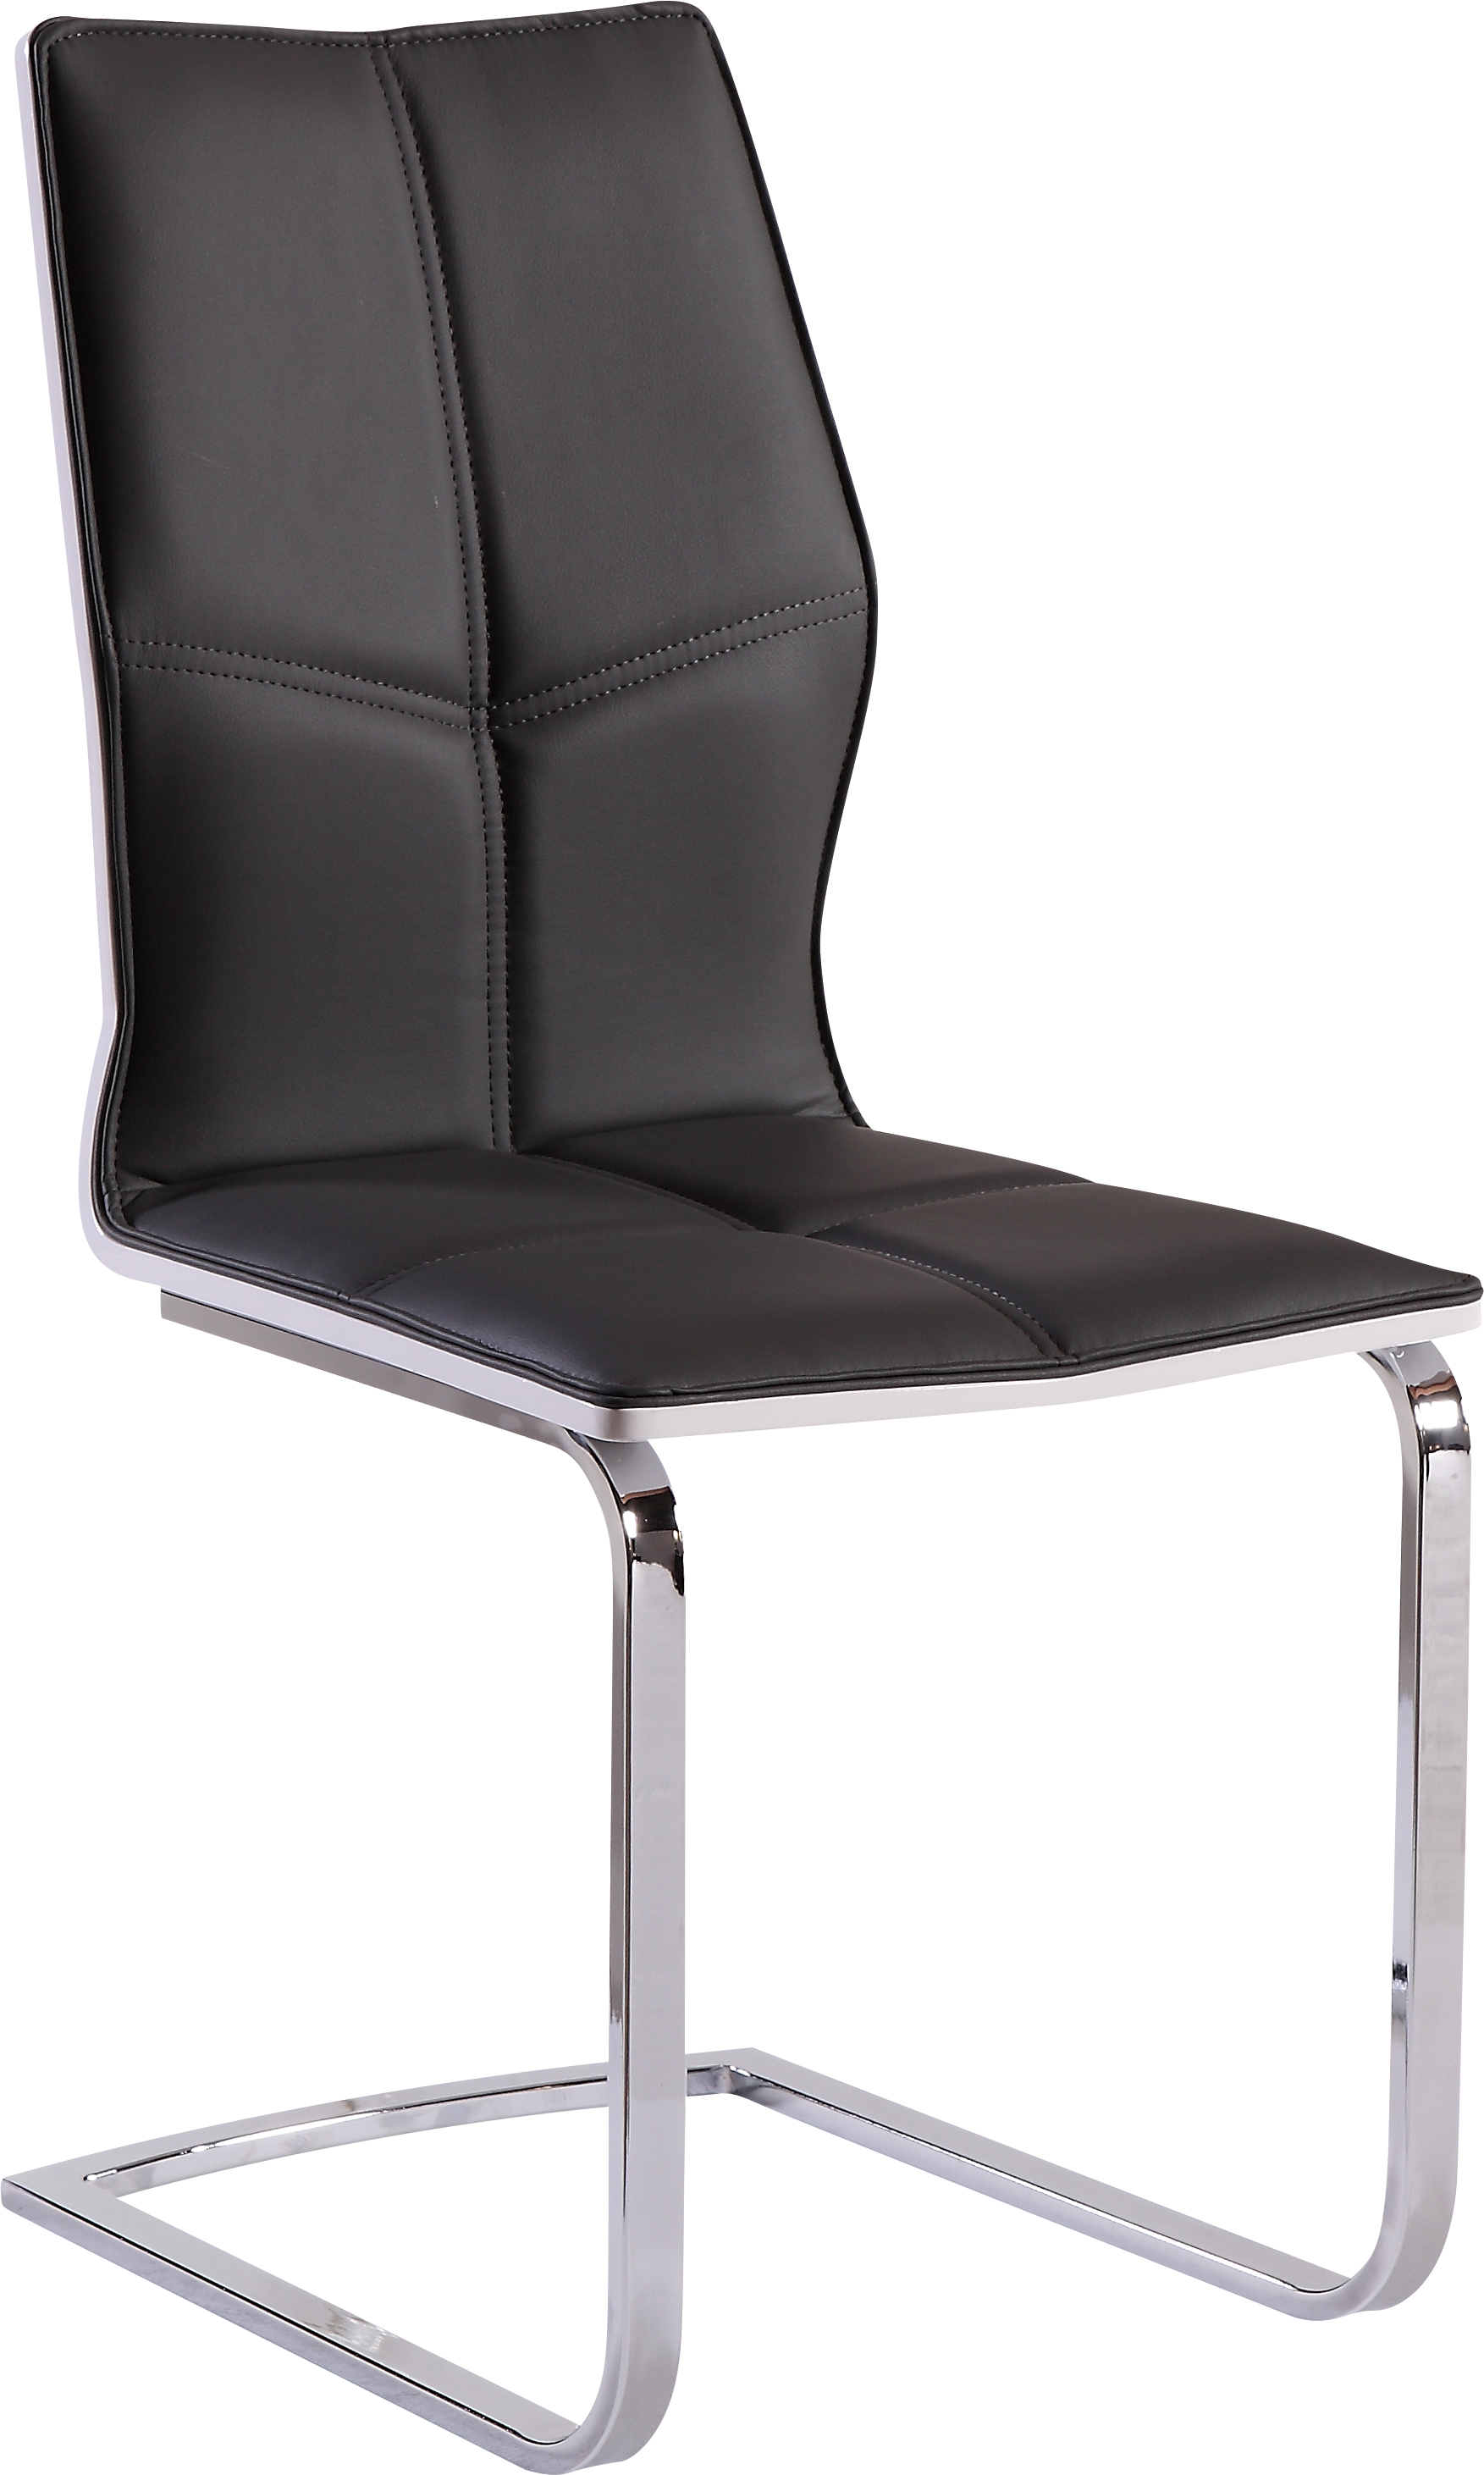 Dining Chair D8879DC Set of 2 Grey PUWhite HG by Global  : D8879DT from futonland.com size 1753 x 2923 jpeg 1126kB